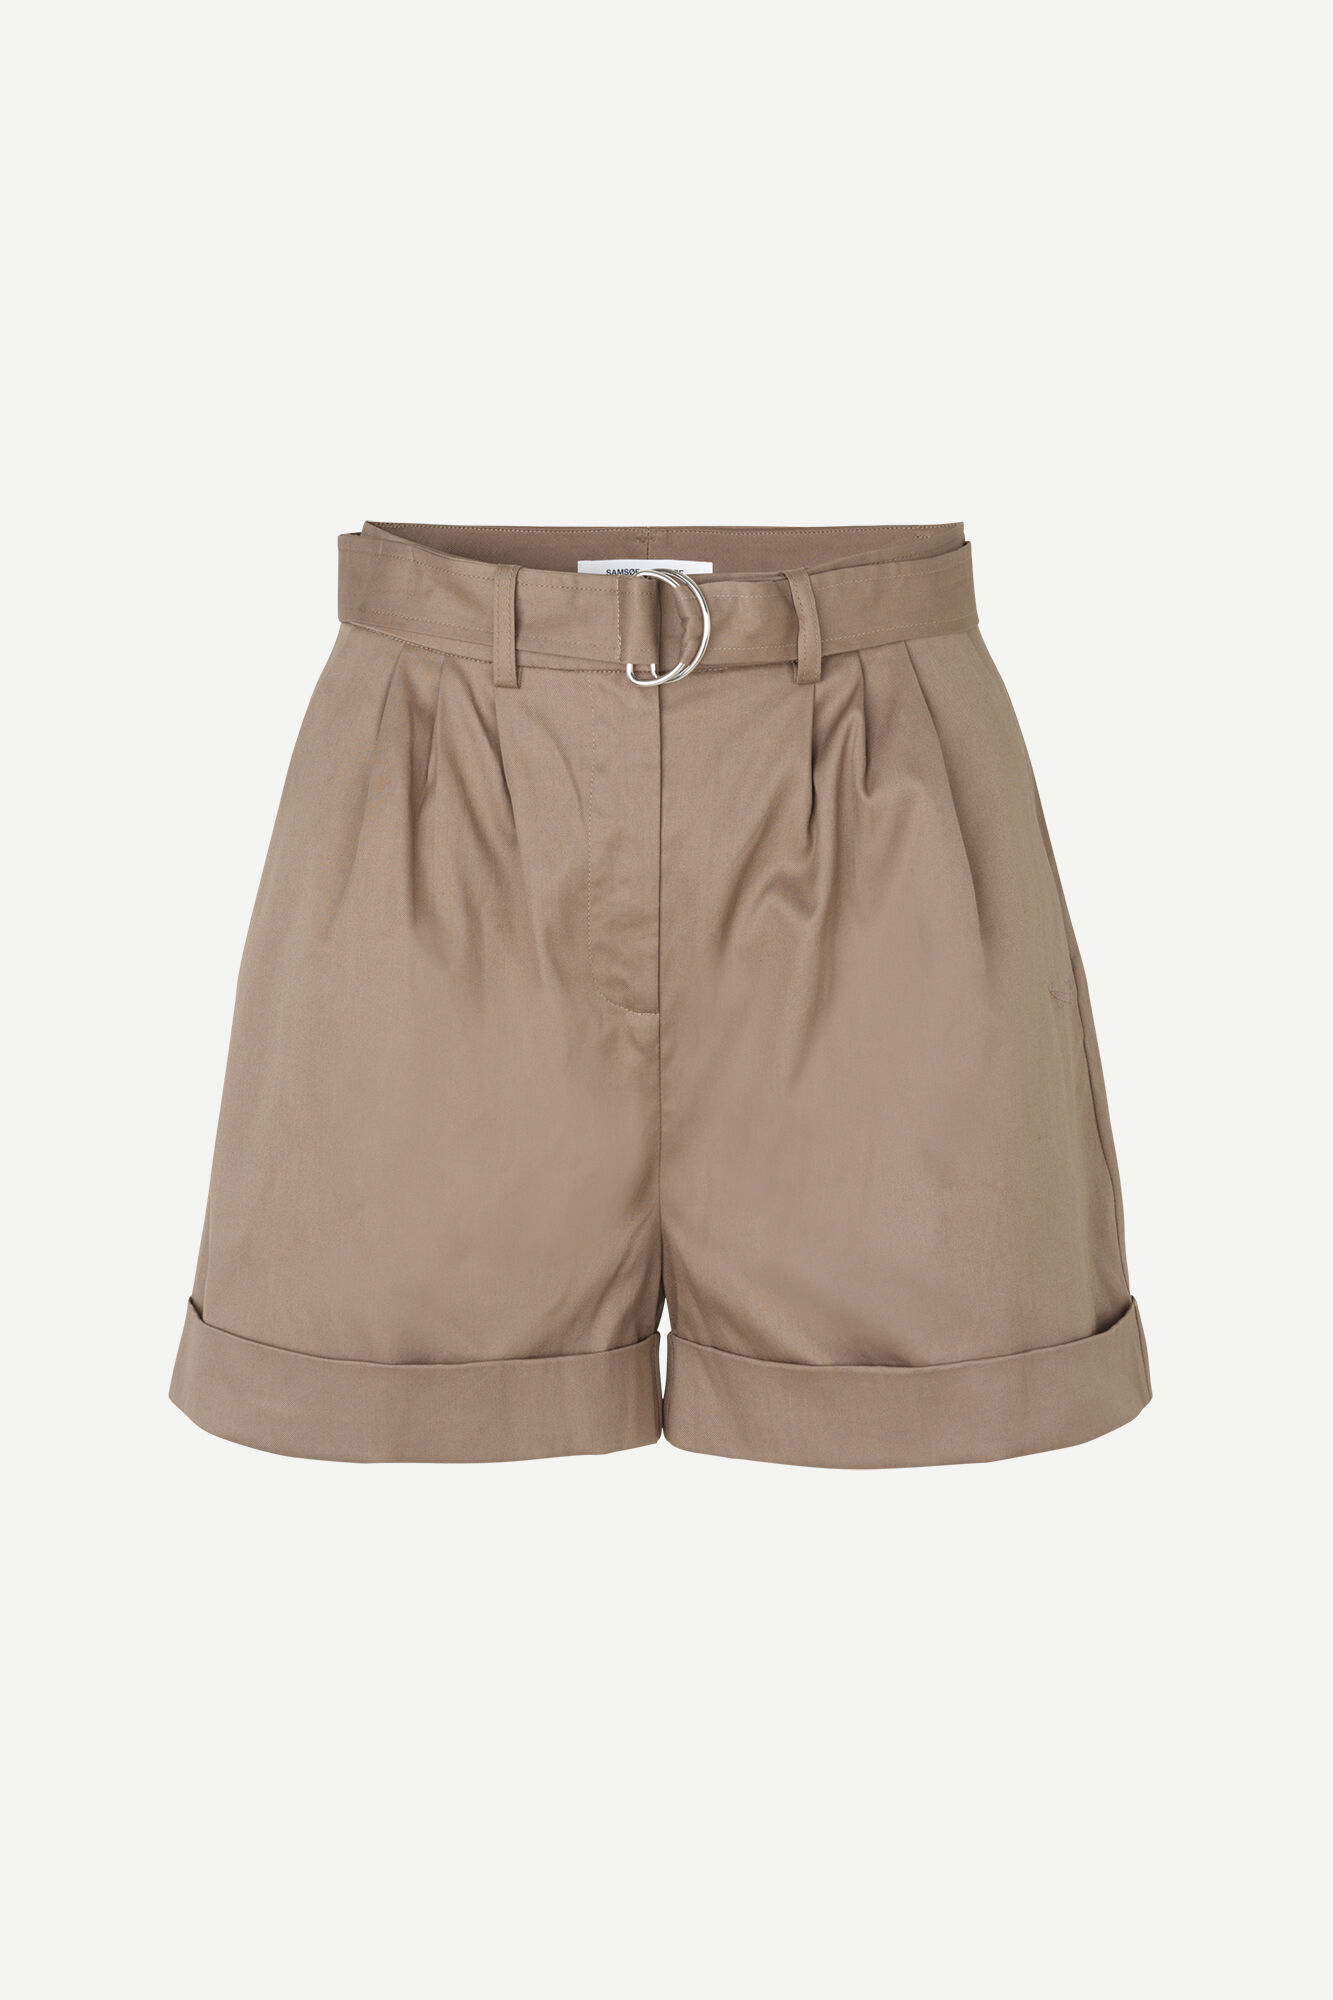 Dakota shorts 13130